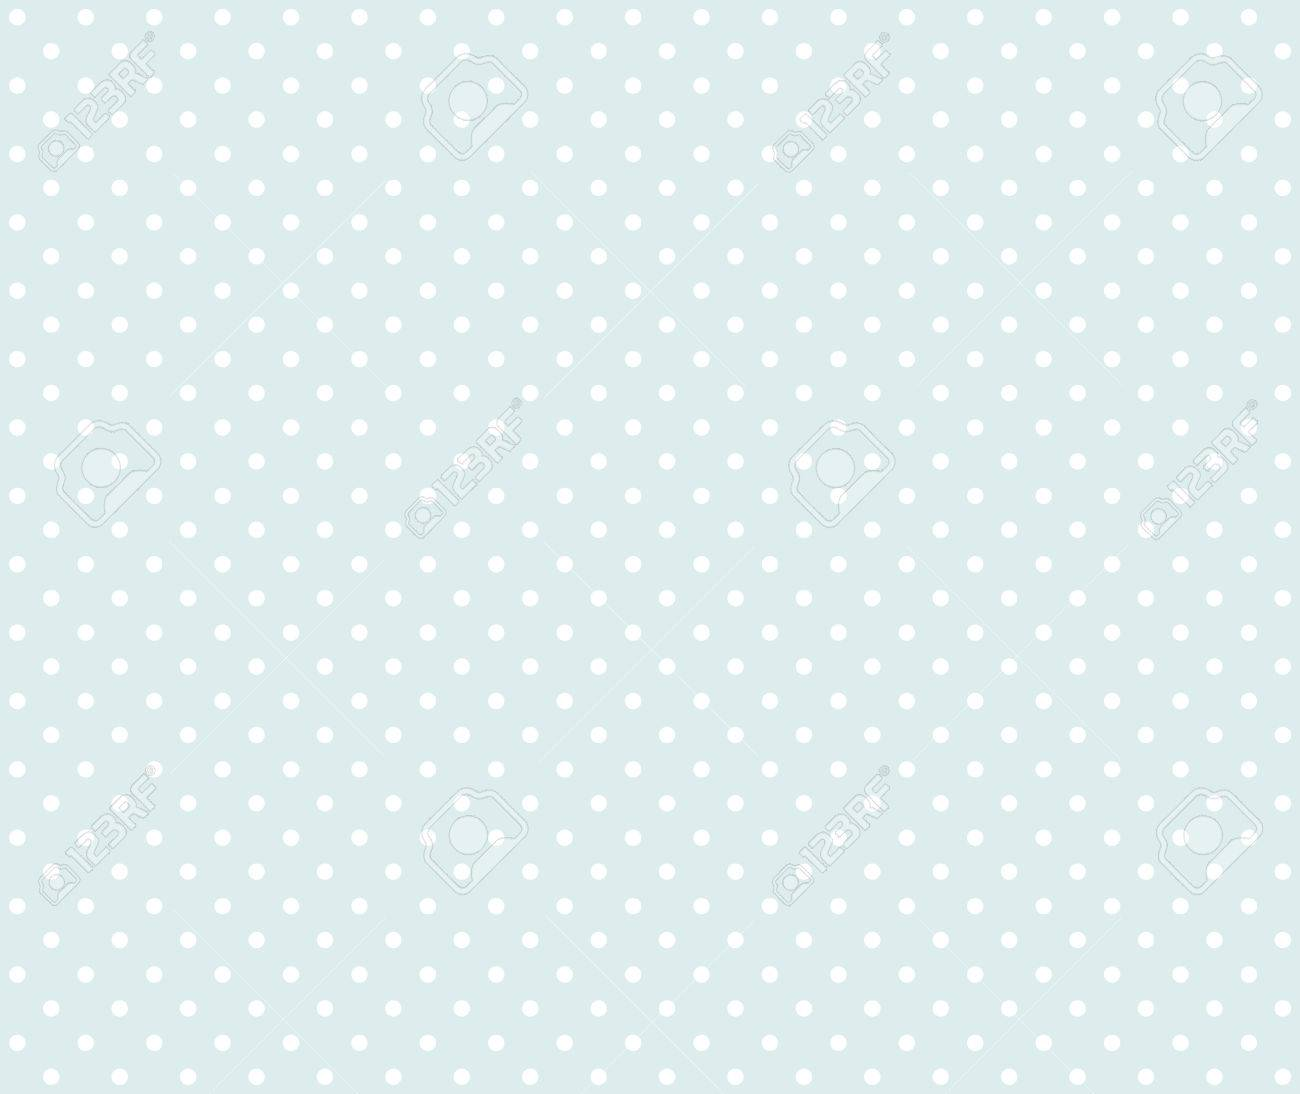 Polka Dot Background White And Light Blue Stock Photo Picture And